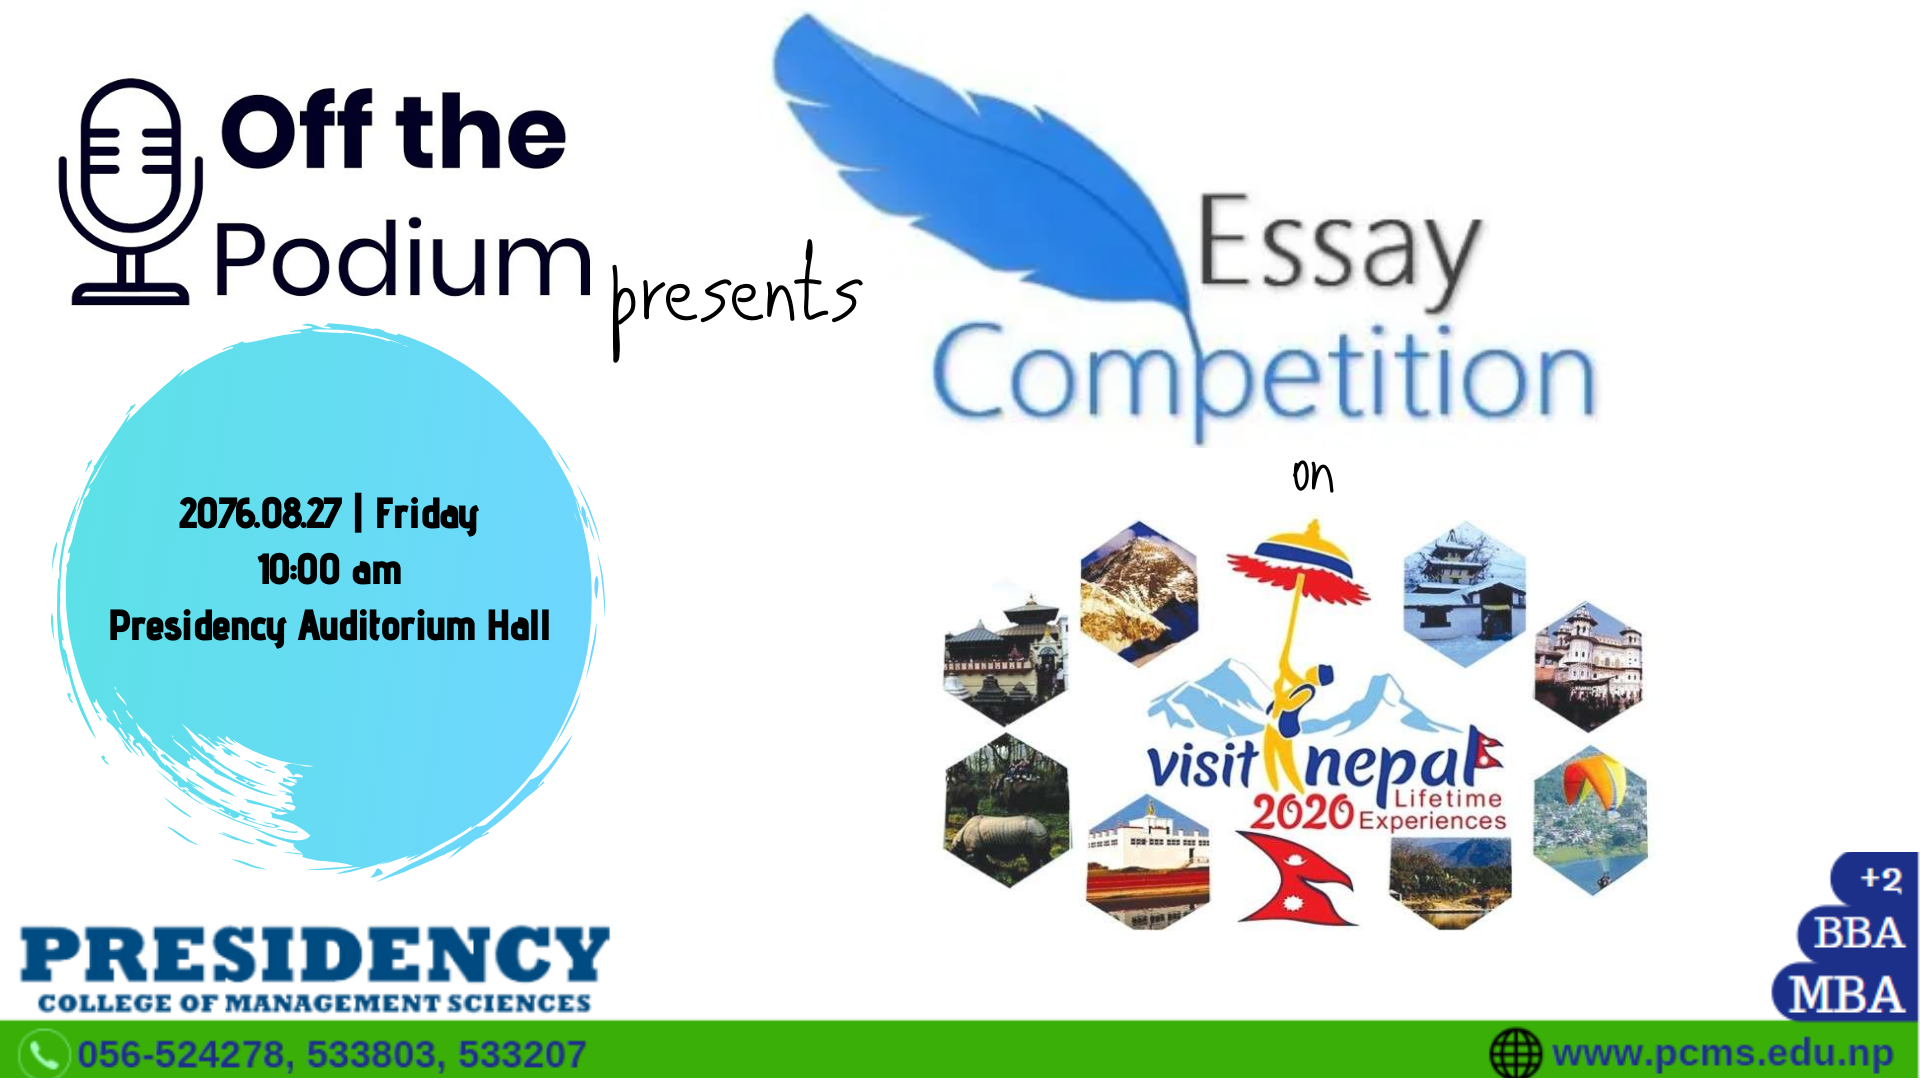 Off The Podium Club : Essay Competition (Theme: Visit Nepal 2020)